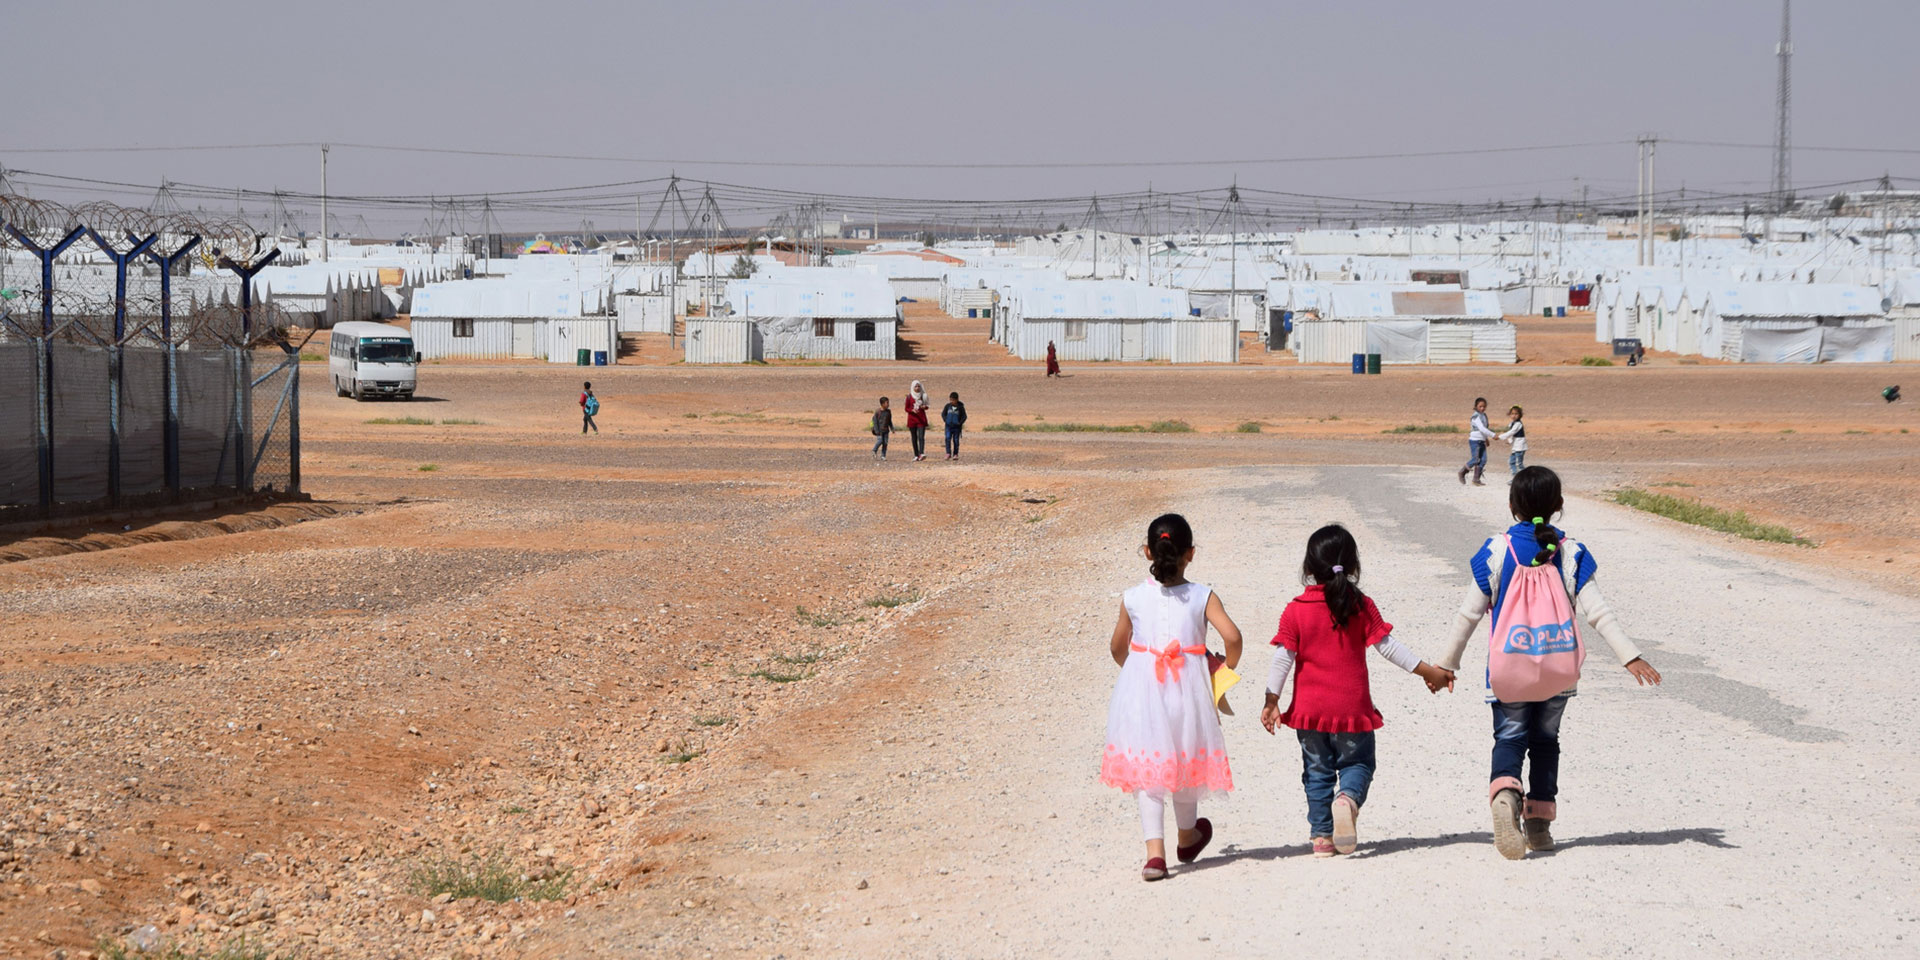 Three girls walk along a gravel path at the Azraq refugee camp in the Jordanian desert.